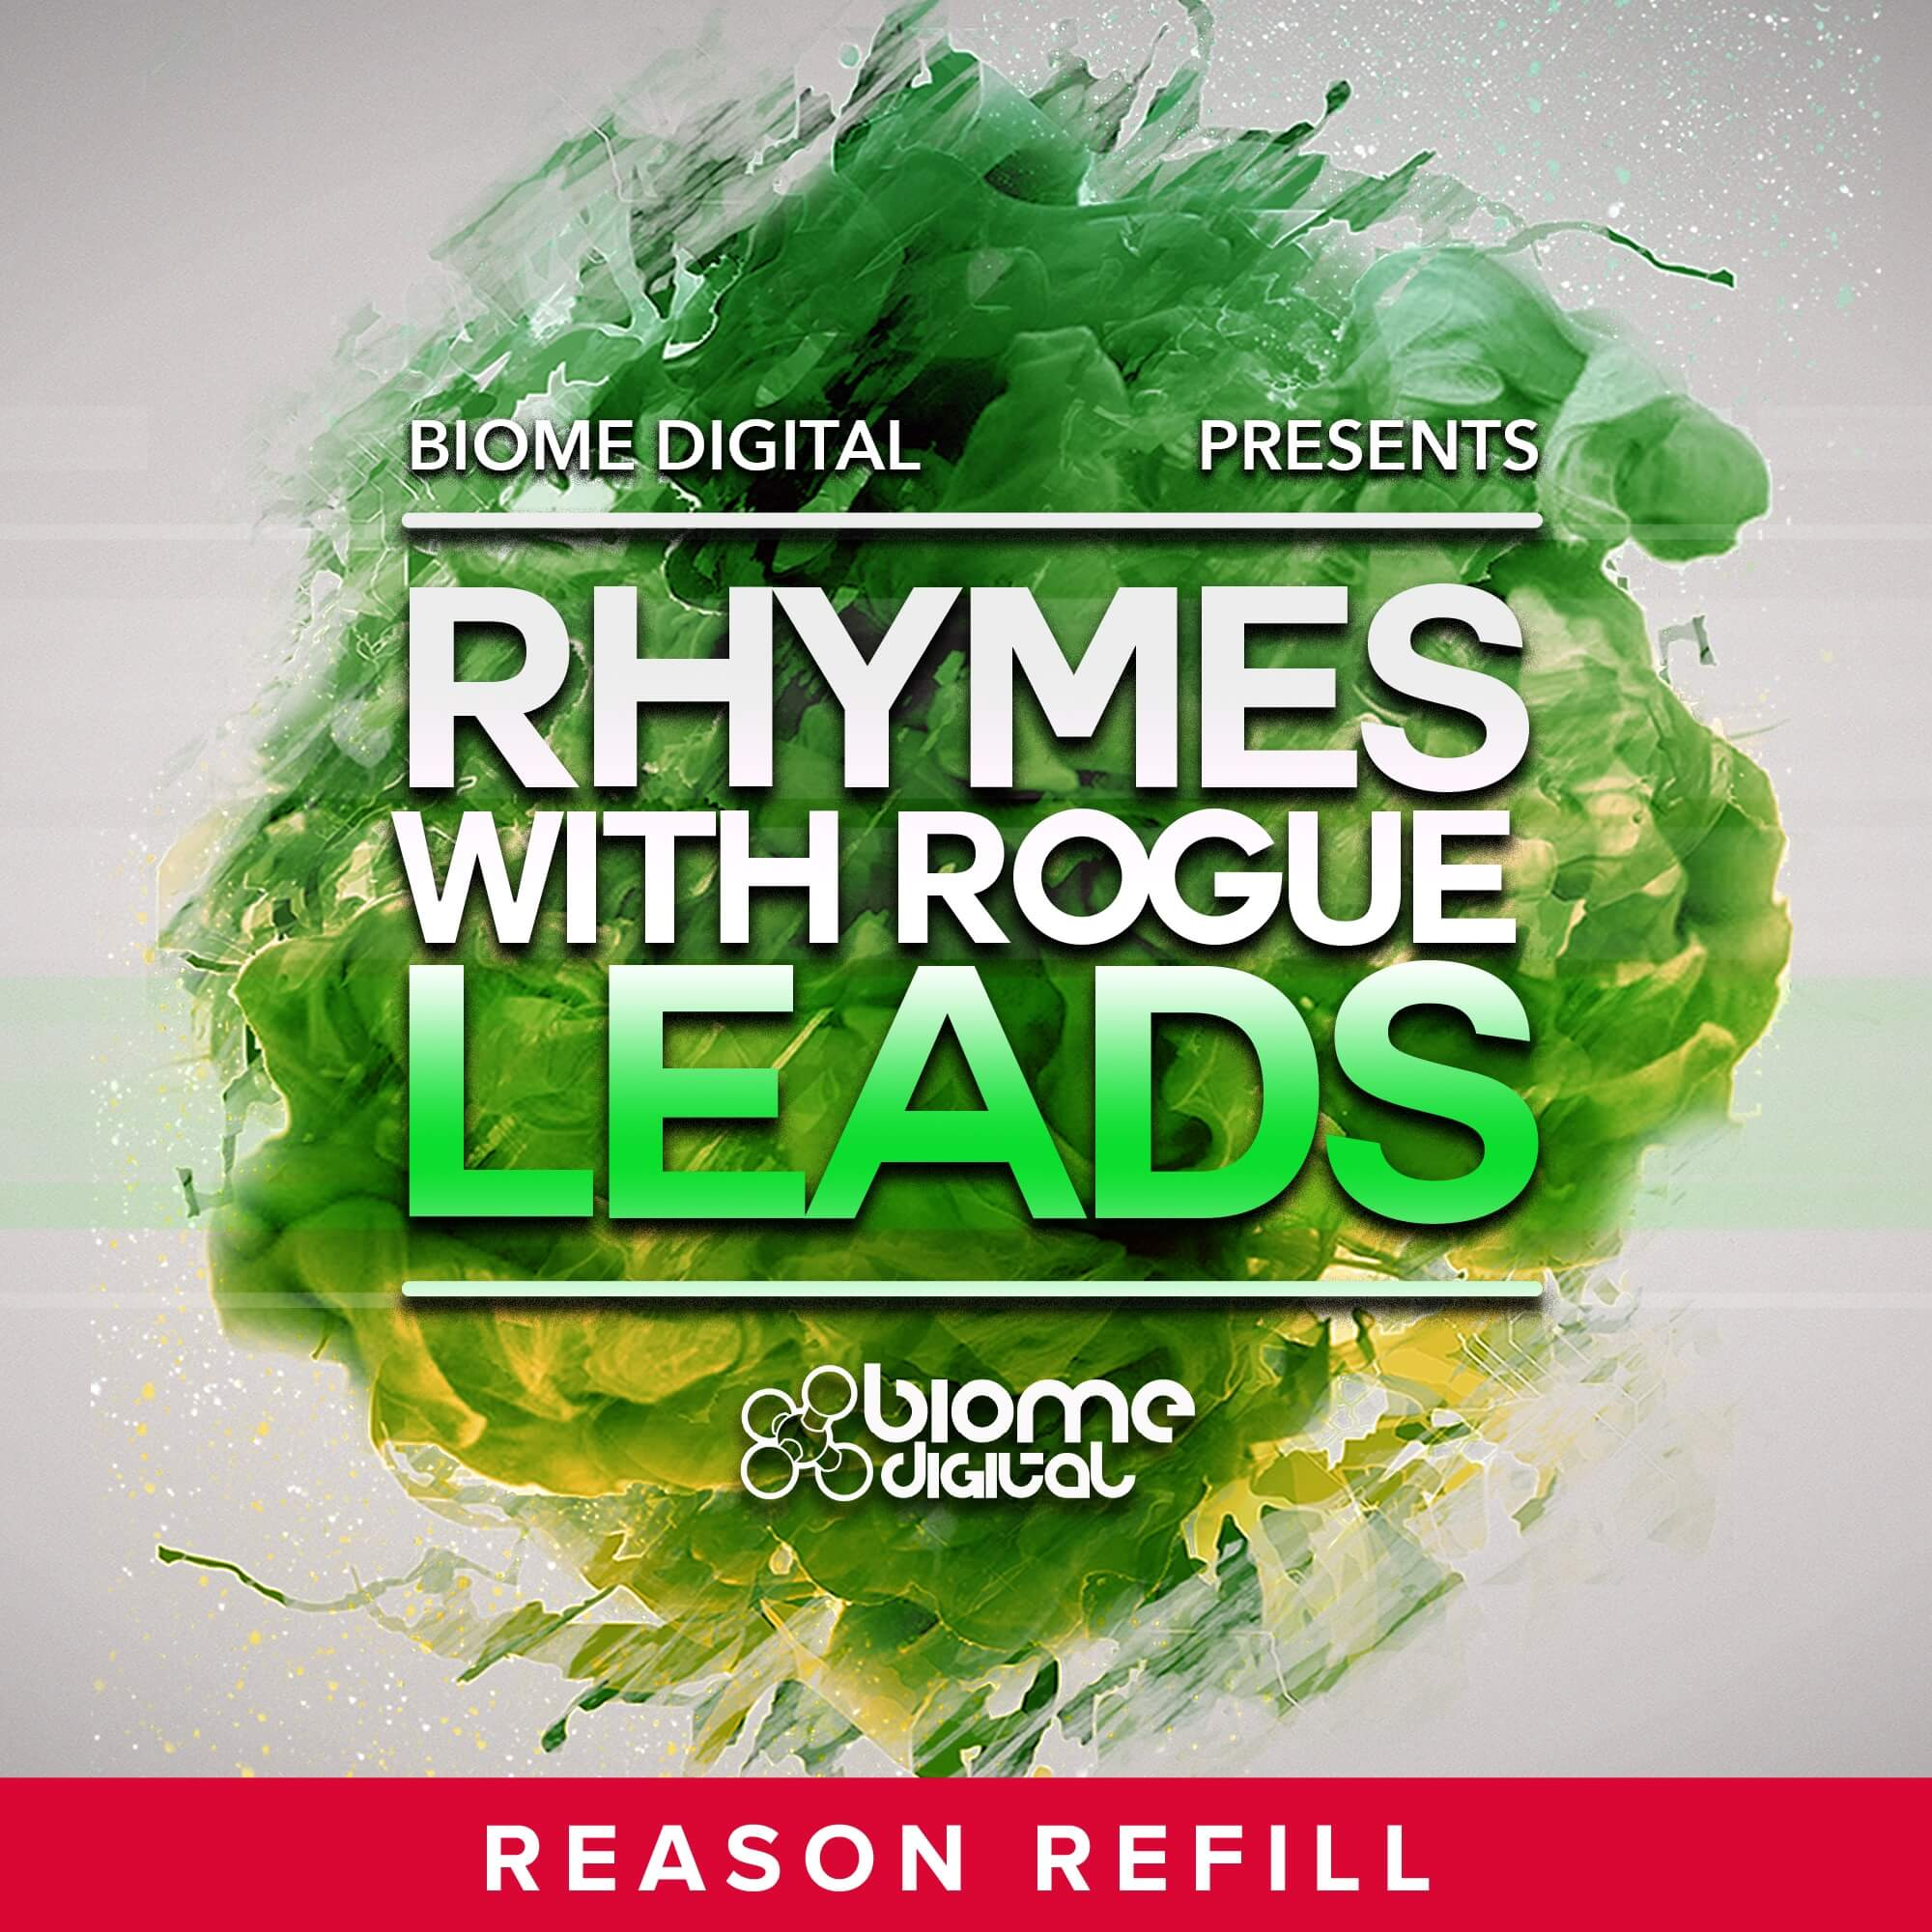 Rhymes With Rogue - Leads (Reason ReFill) - Free Reason Refills